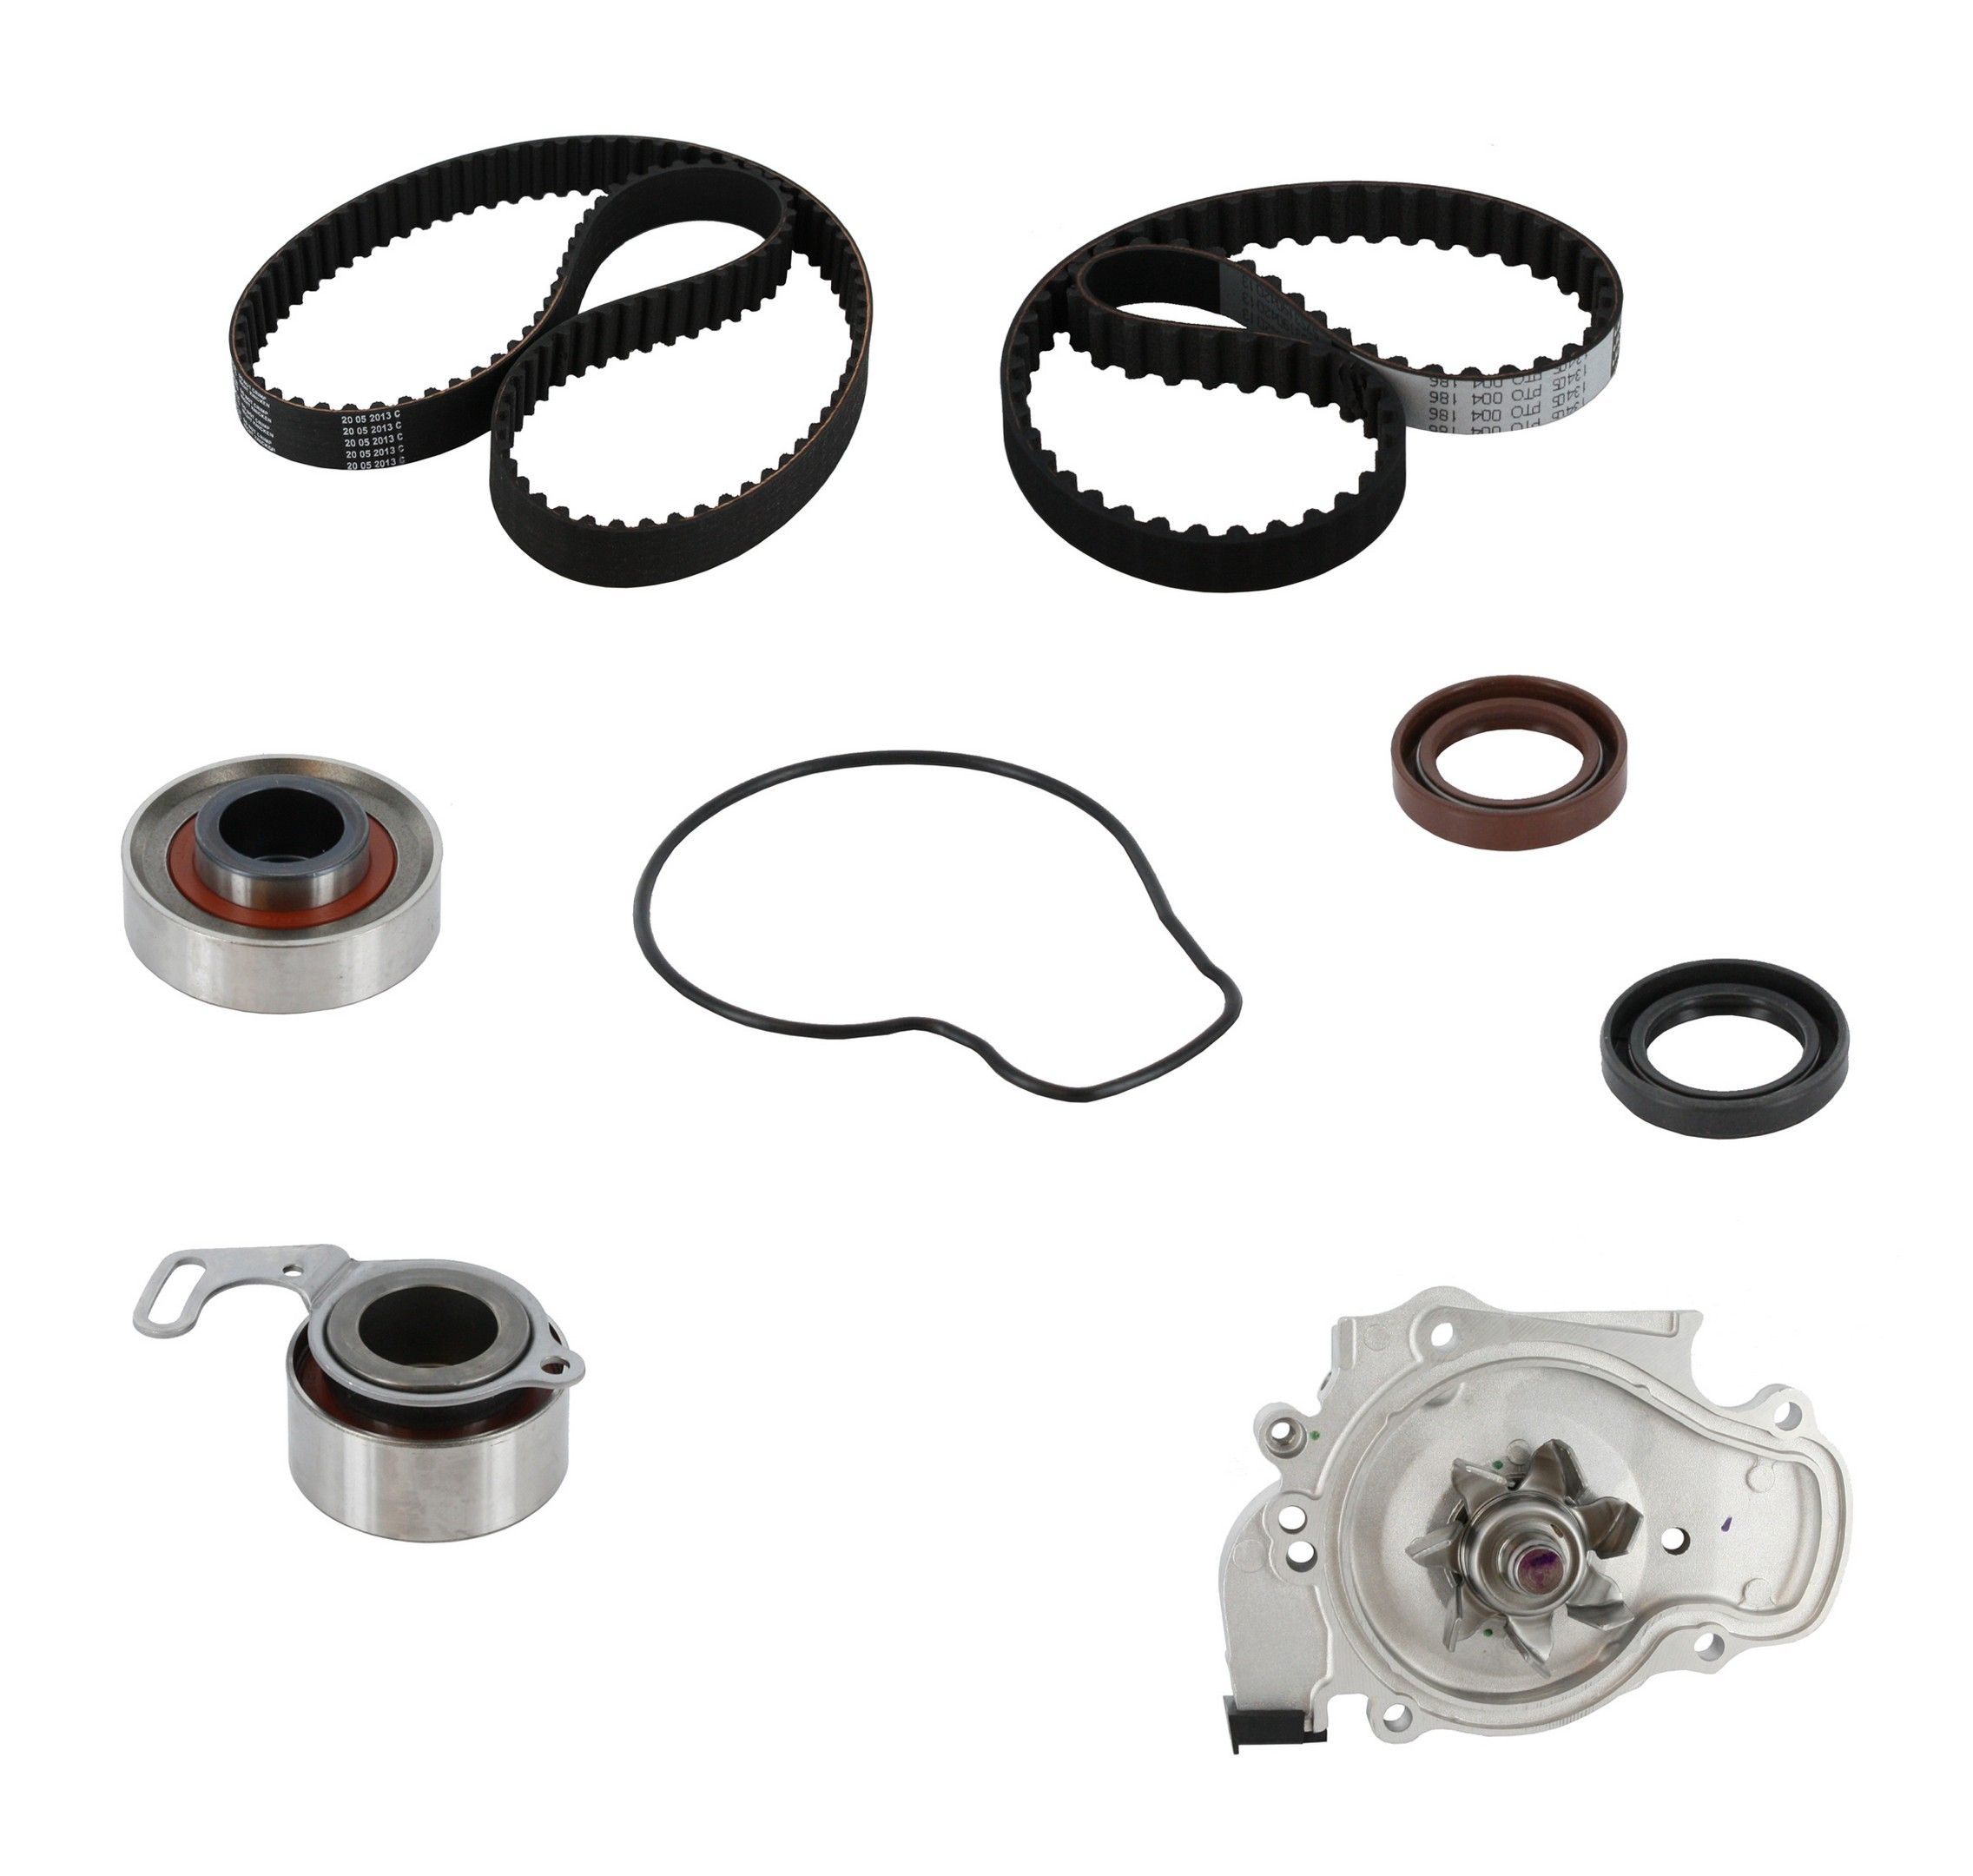 Honda Prelude Engine Timing Belt Kit With Water Pump Replacement 1992 Balancer 1996 4 Cyl 22l Crp Pp186 187lk1 Pro Series Plus Contitech Interference Eng